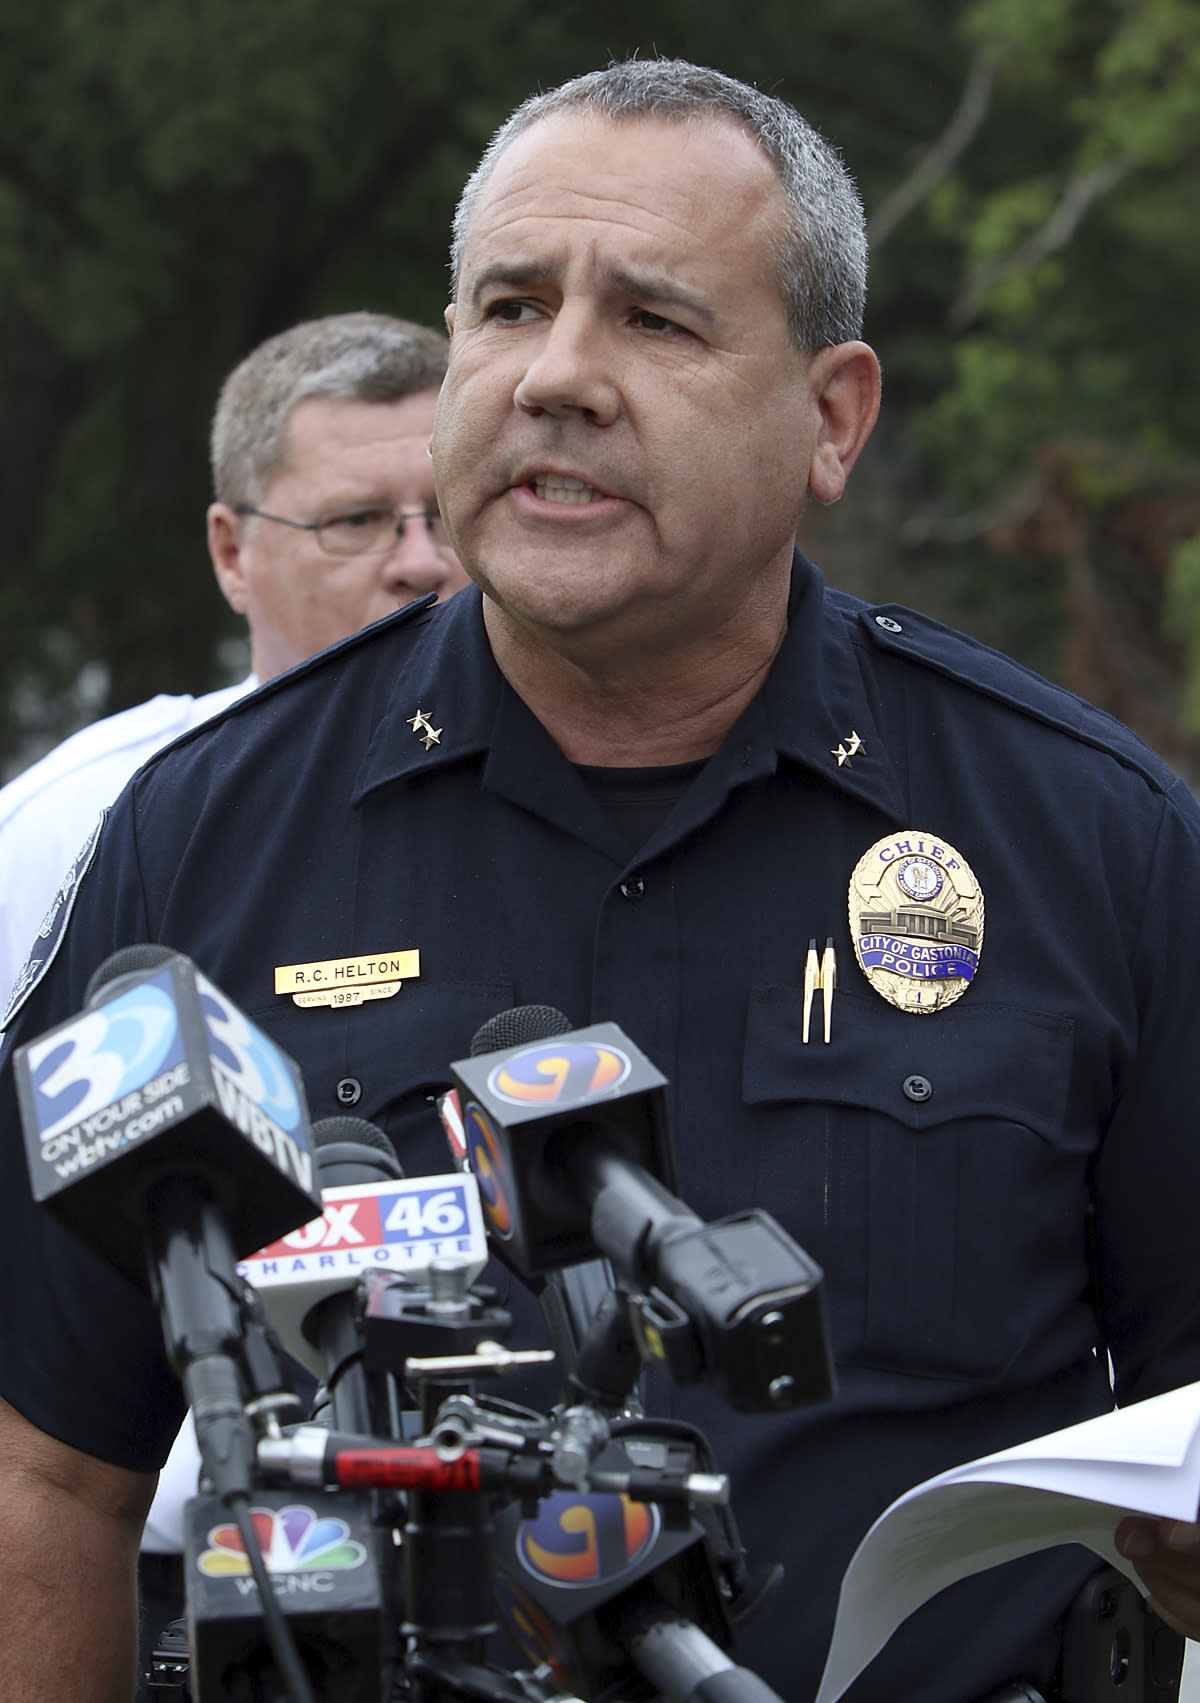 City of Gastonia Police Chief R. C. Helton talks about the progress that is being made during a press conference near Rankin Lake Park as the search continues for missing six-year-old Maddox Ritch Monday, Sept. 24, 2018 in Gastonia, NC. Maddox Ritch went missing early Saturday afternoon while walking in the park with his family. (Mike Hensdill/The Gaston Gazette via AP)